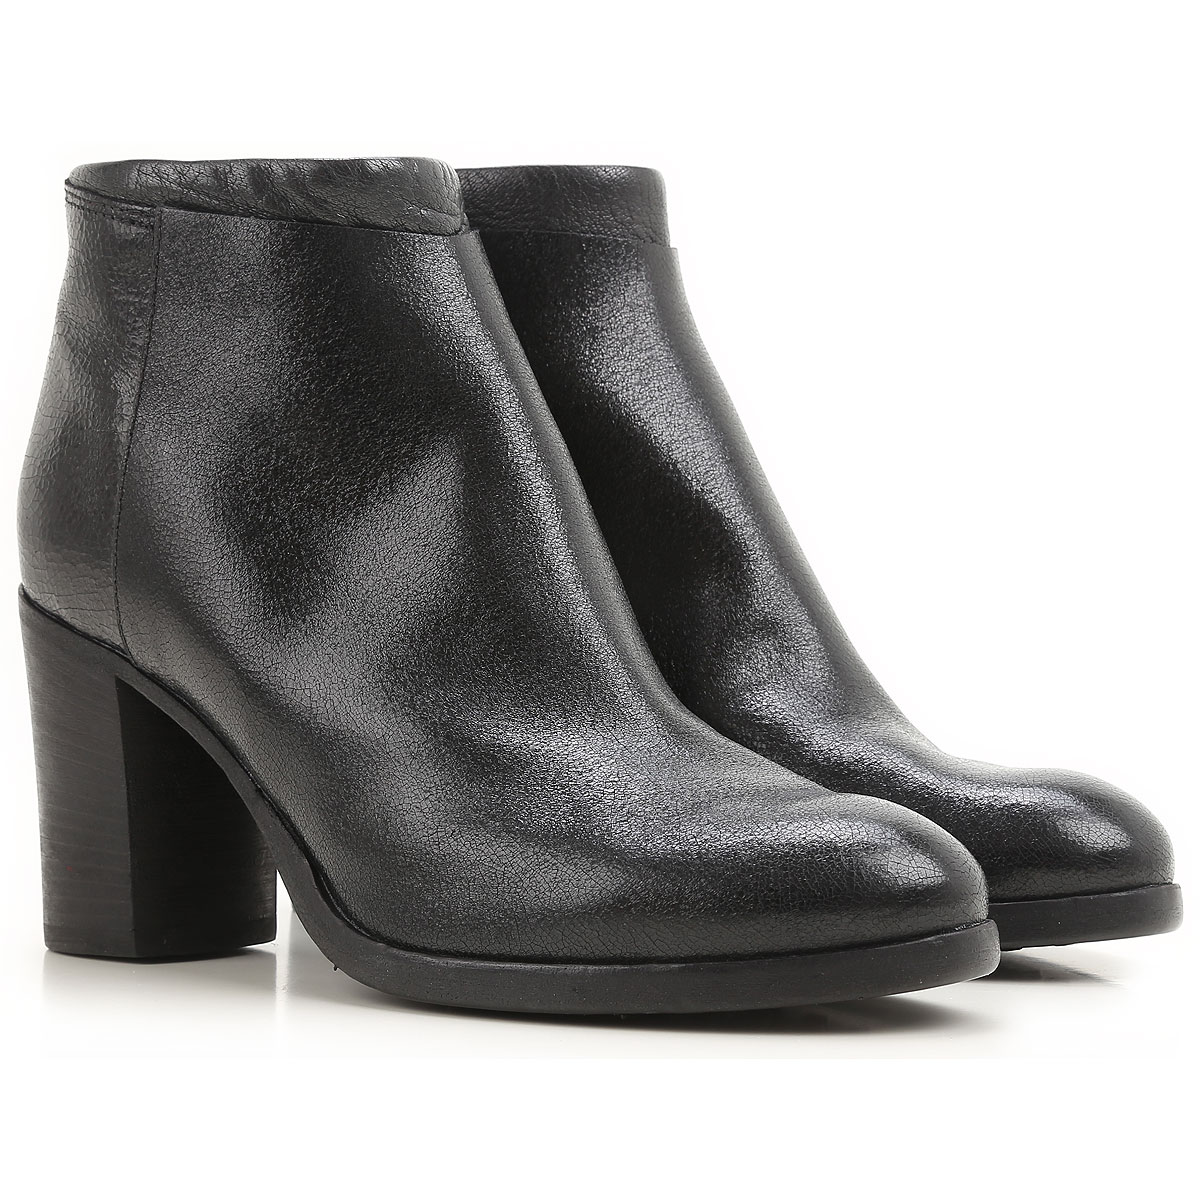 Image of Moma Boots for Women, Booties On Sale in Outlet, Black Desert, Leather, 2017, 8.5 9